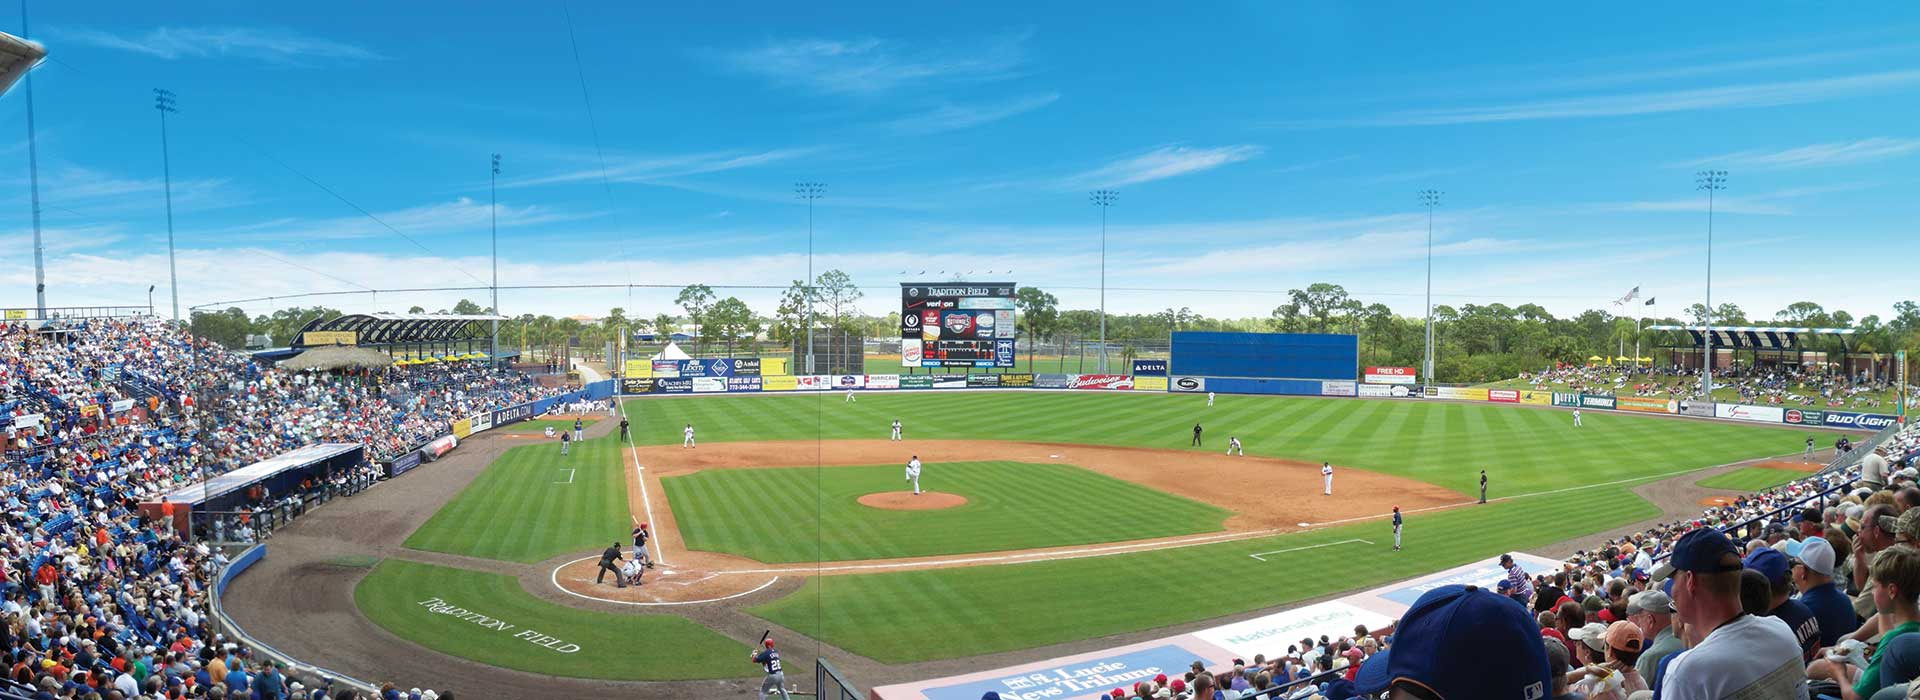 St. Lucie County NY Mets Spring Training